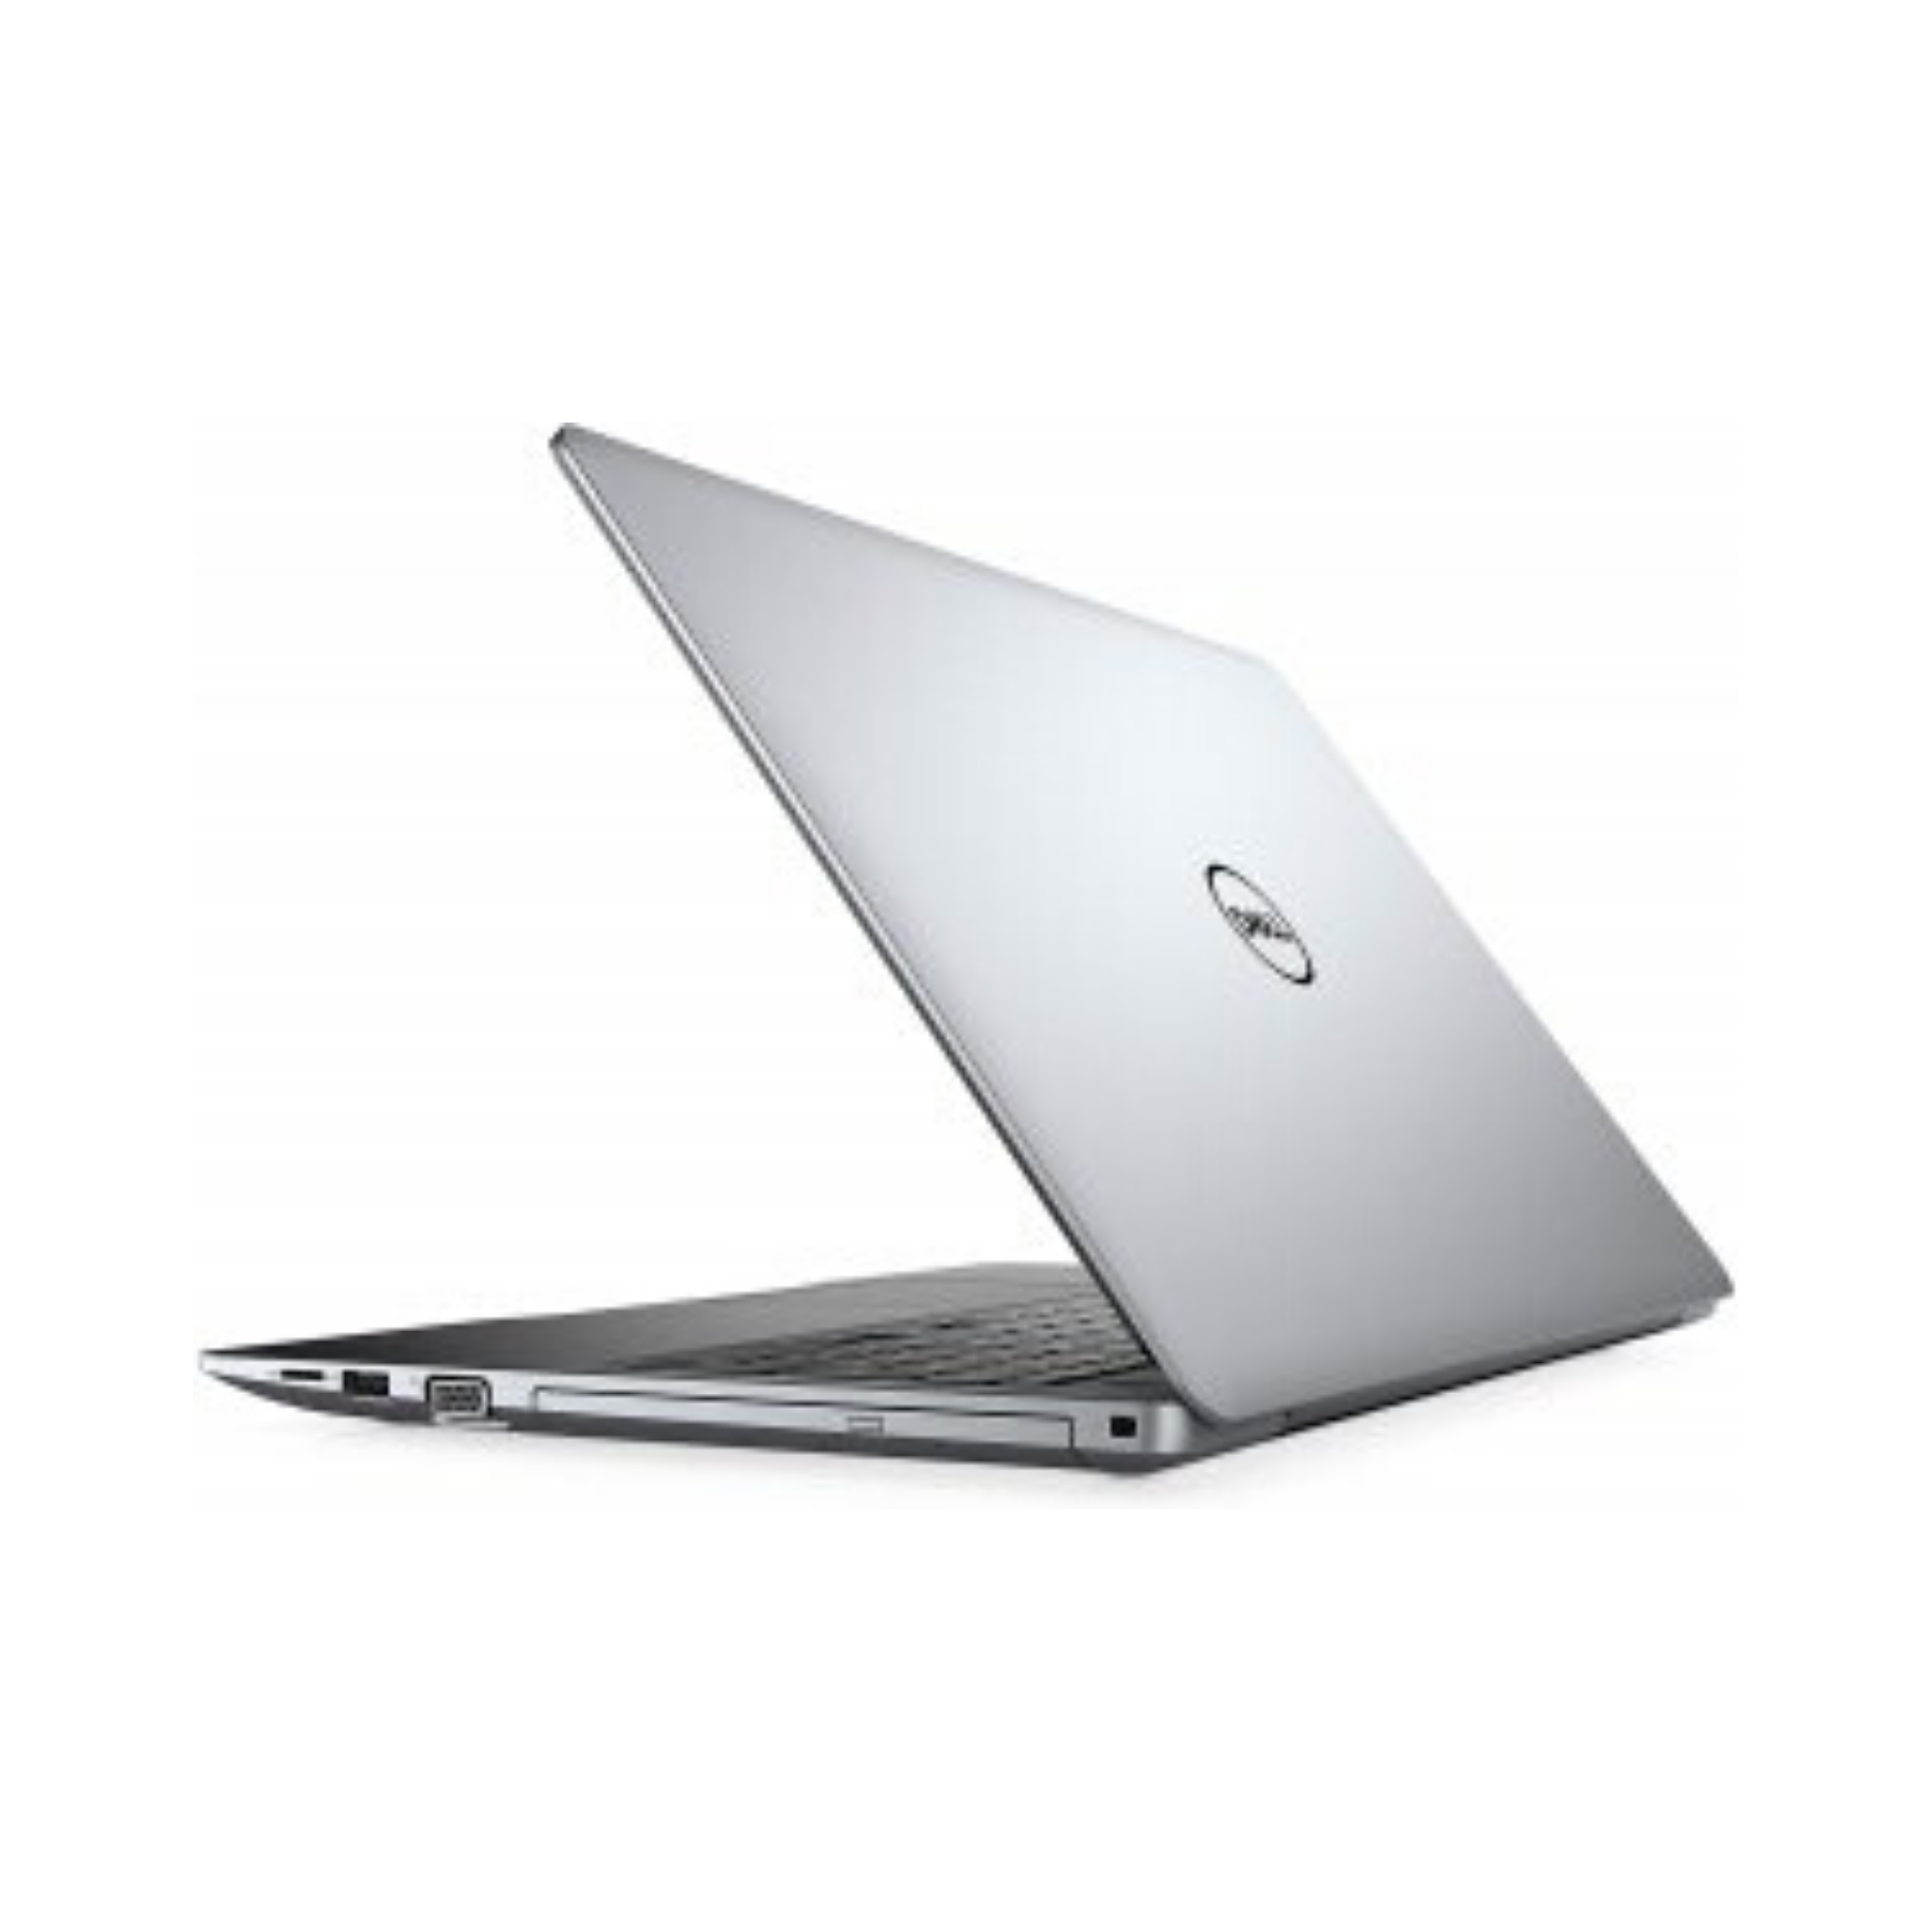 Dell Vostro 3580 Intel Core i5 8th Gen 15.6-inch FHD Laptop (4GB | 1TB HDD | Windows 10 Home | MS Office | Black |1 Year ADP+NBD Warranty by Dell | 2.2 Kg)